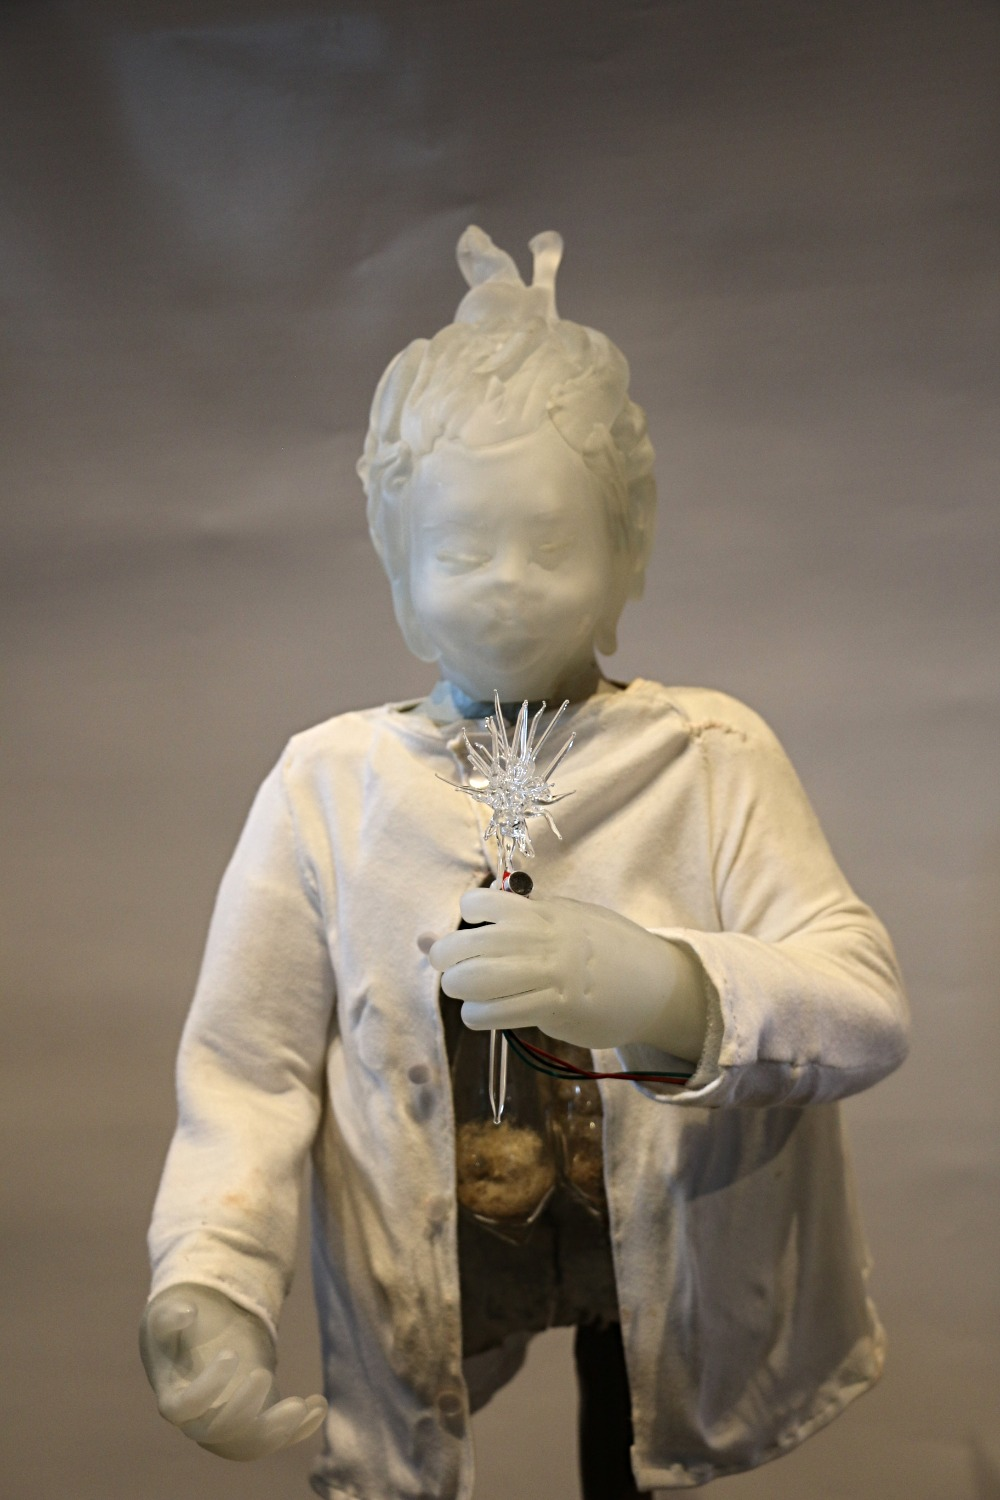 A hand blown glass sculpture of a girl wishing on a dandelion